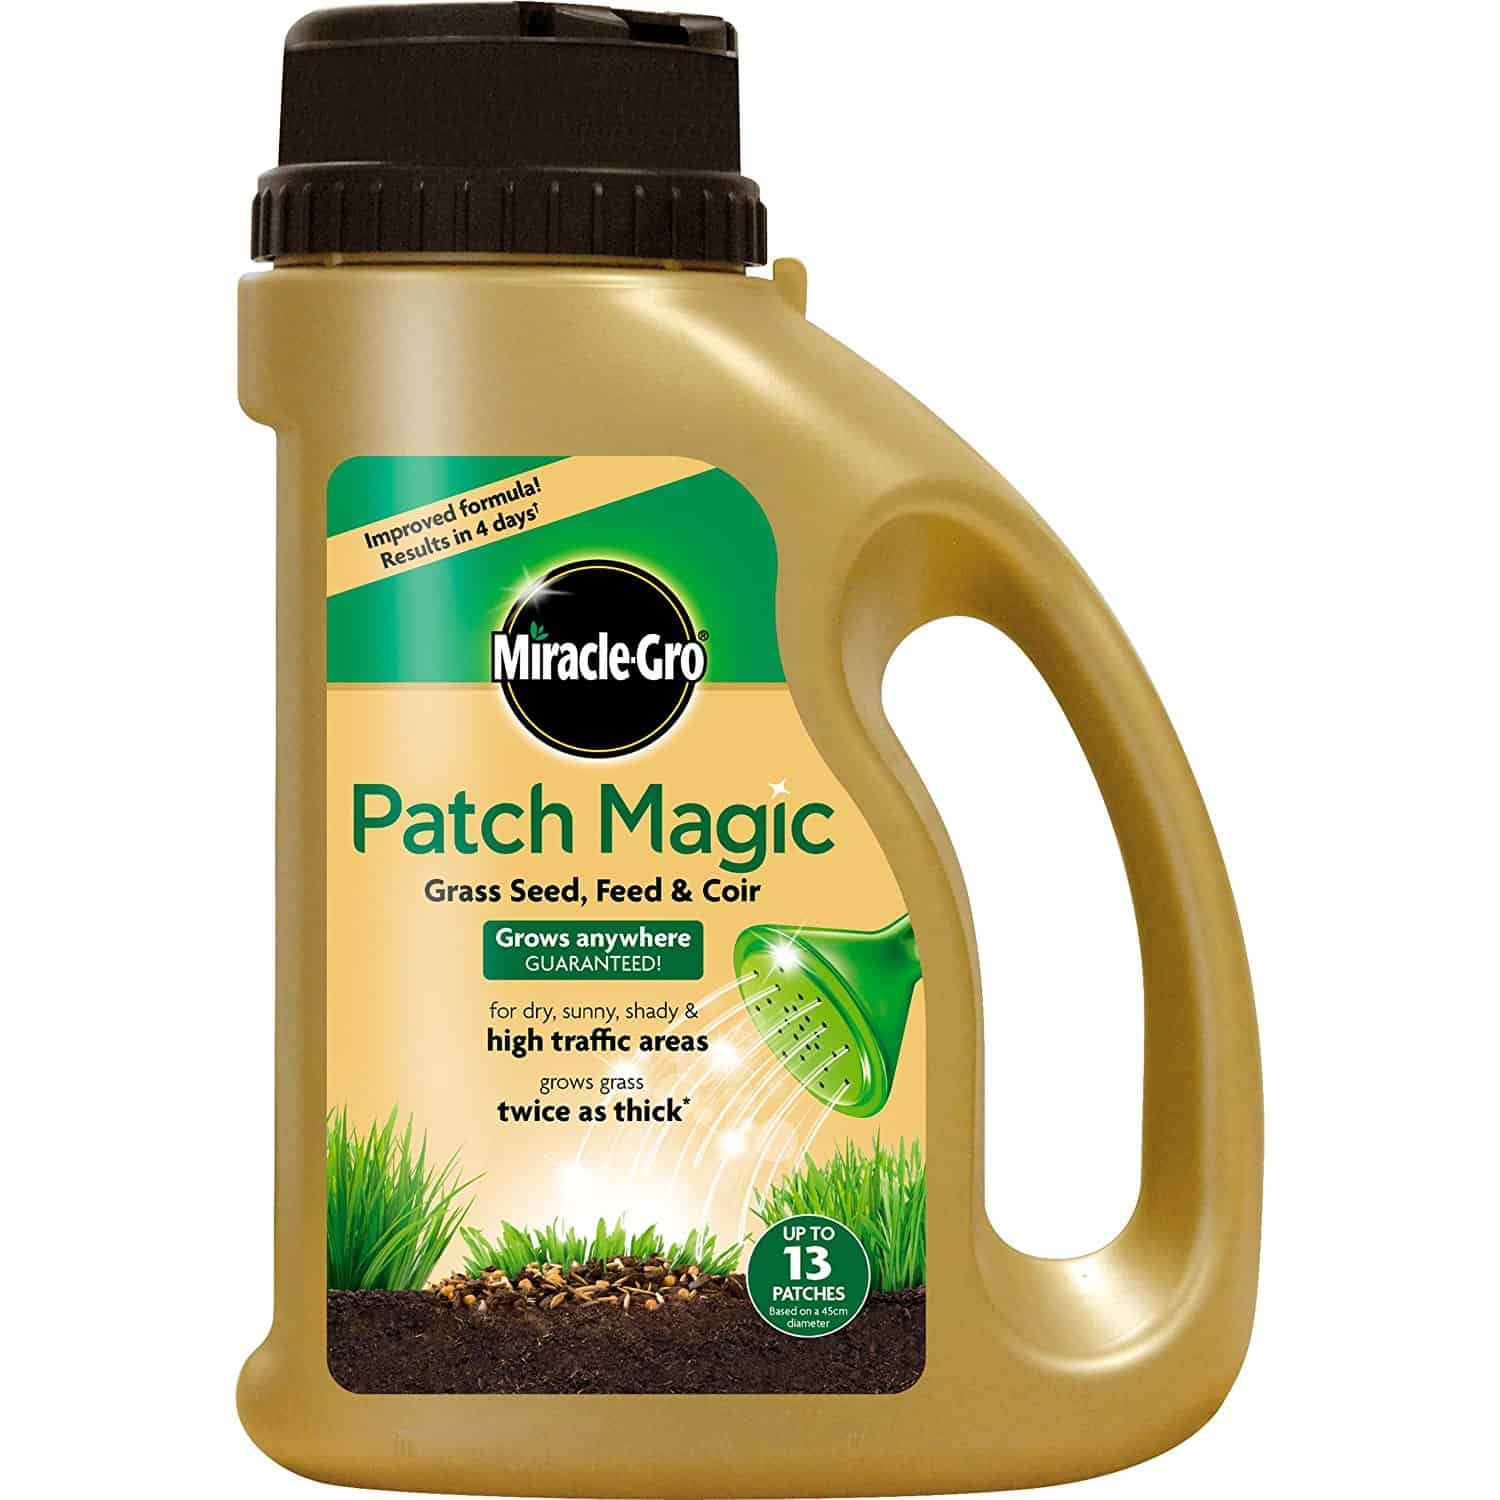 Best Grass Seed for the Money – Miracle-Gro